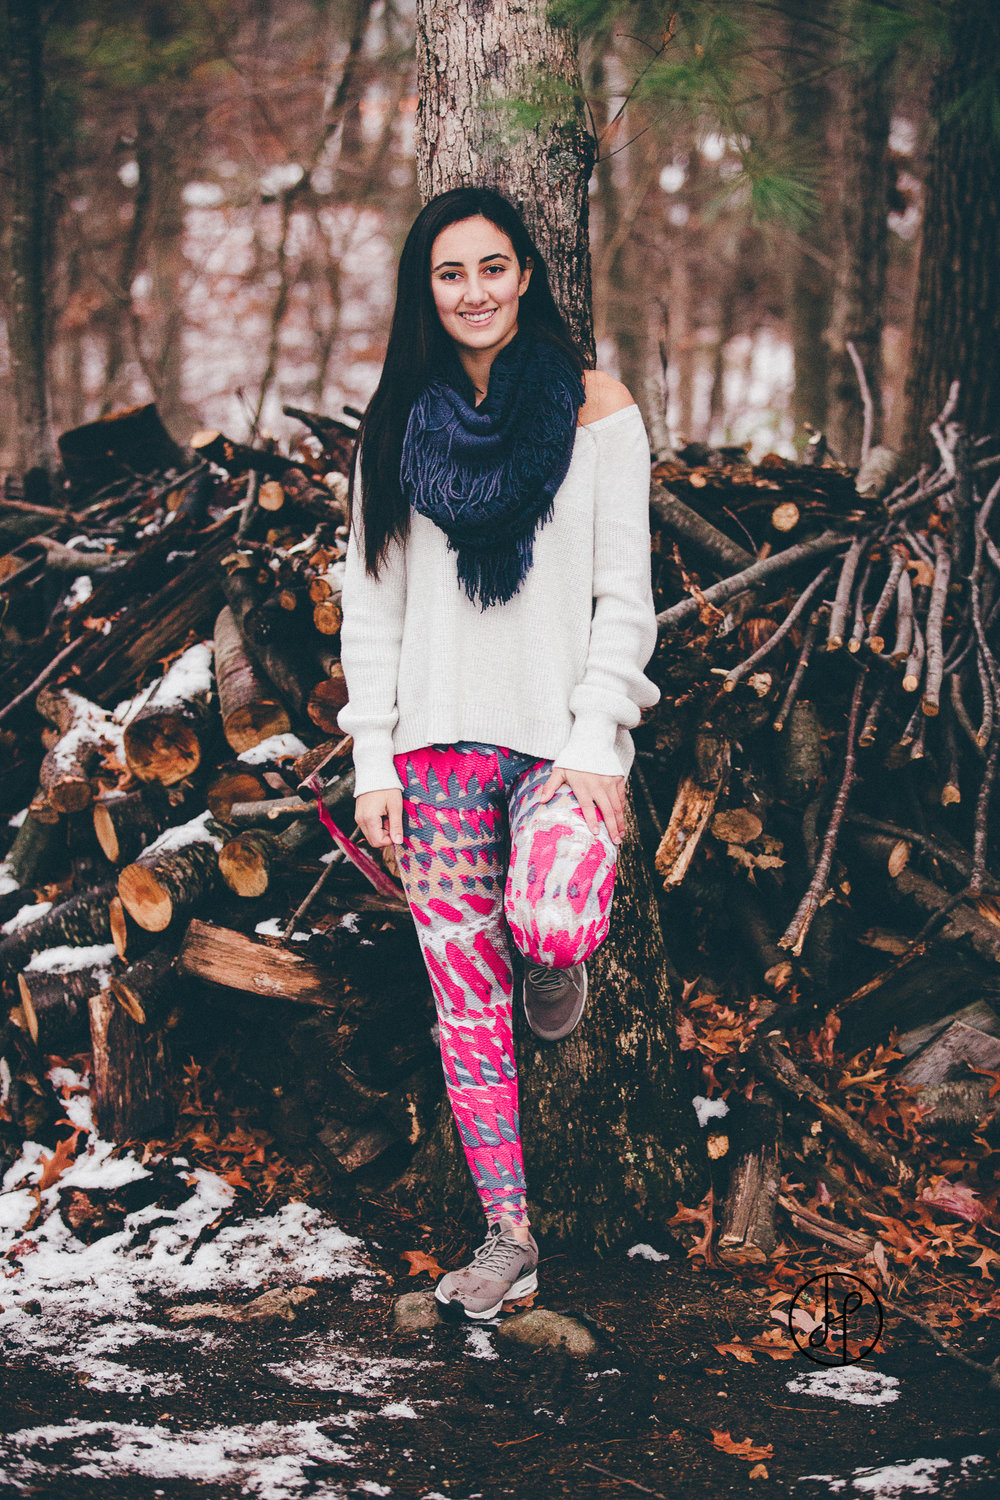 Pitanga_Winter_Fitness_Leggings_Jennifer_Helmka-7.jpg